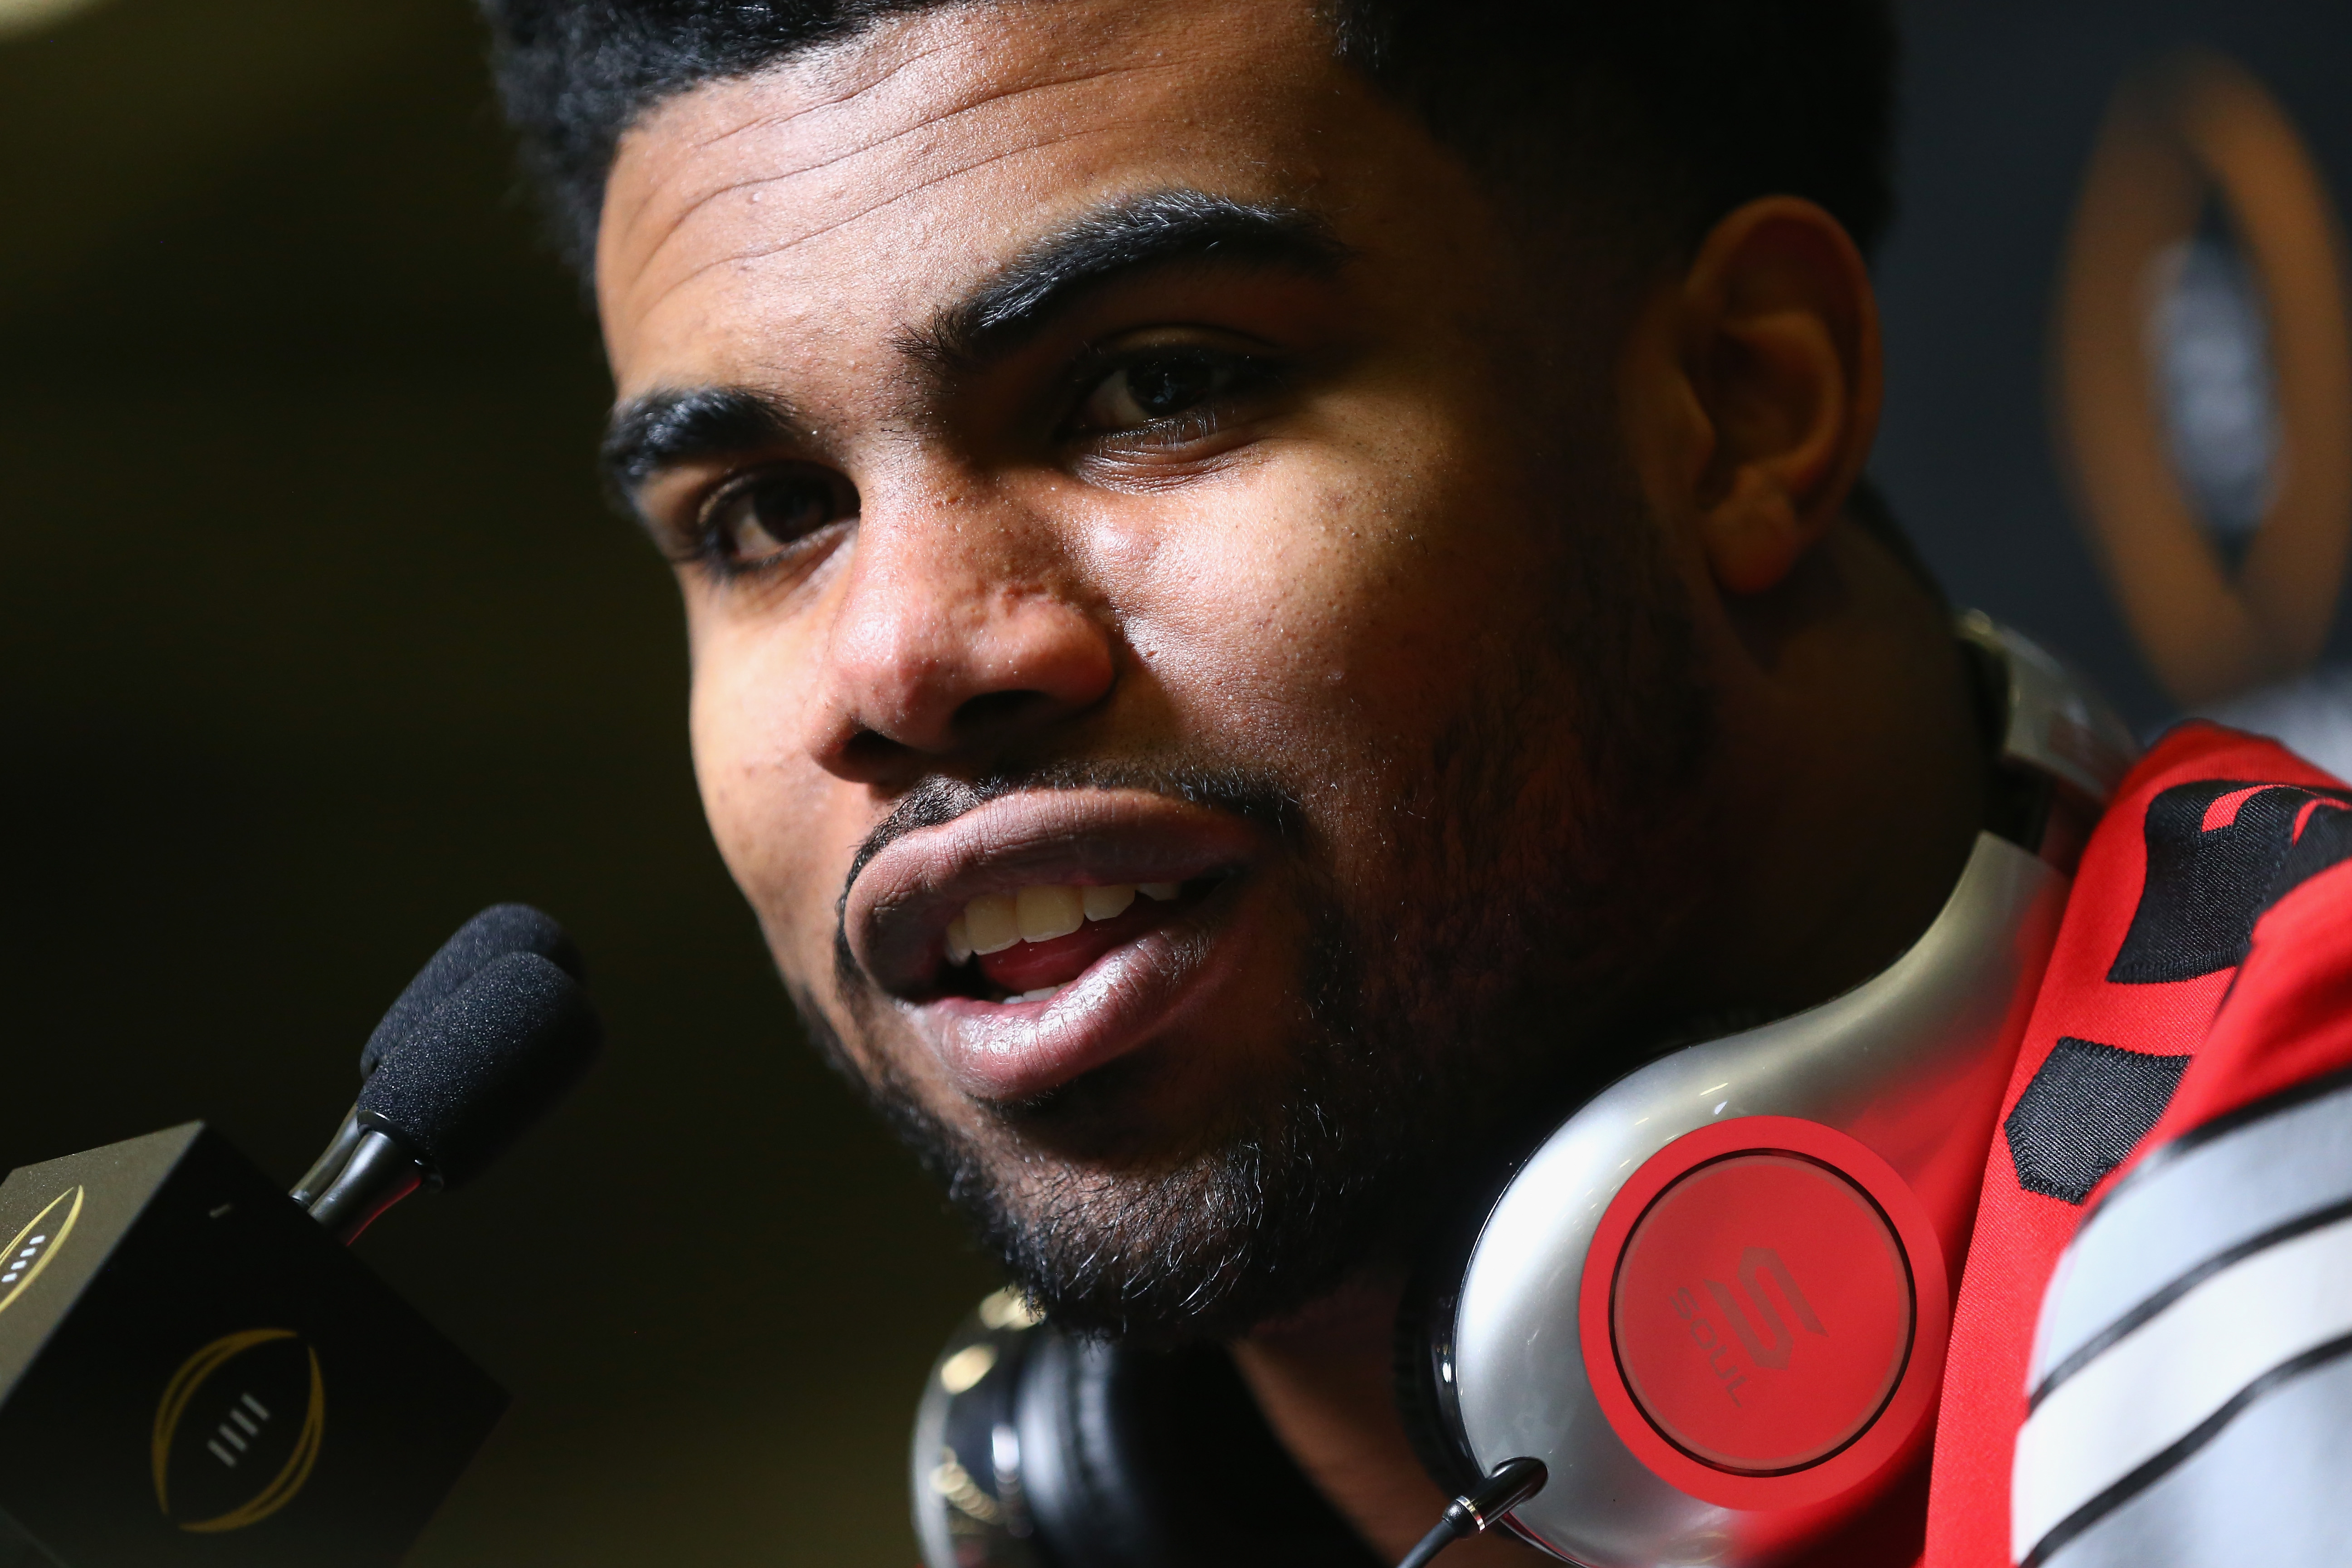 Ezekiel Elliott #15 of the Ohio State Buckeyes talks with media during Media Day for the College Football Playoff National Championship at Dallas Convention Center on January 10, 2015 in Dallas, Texas.